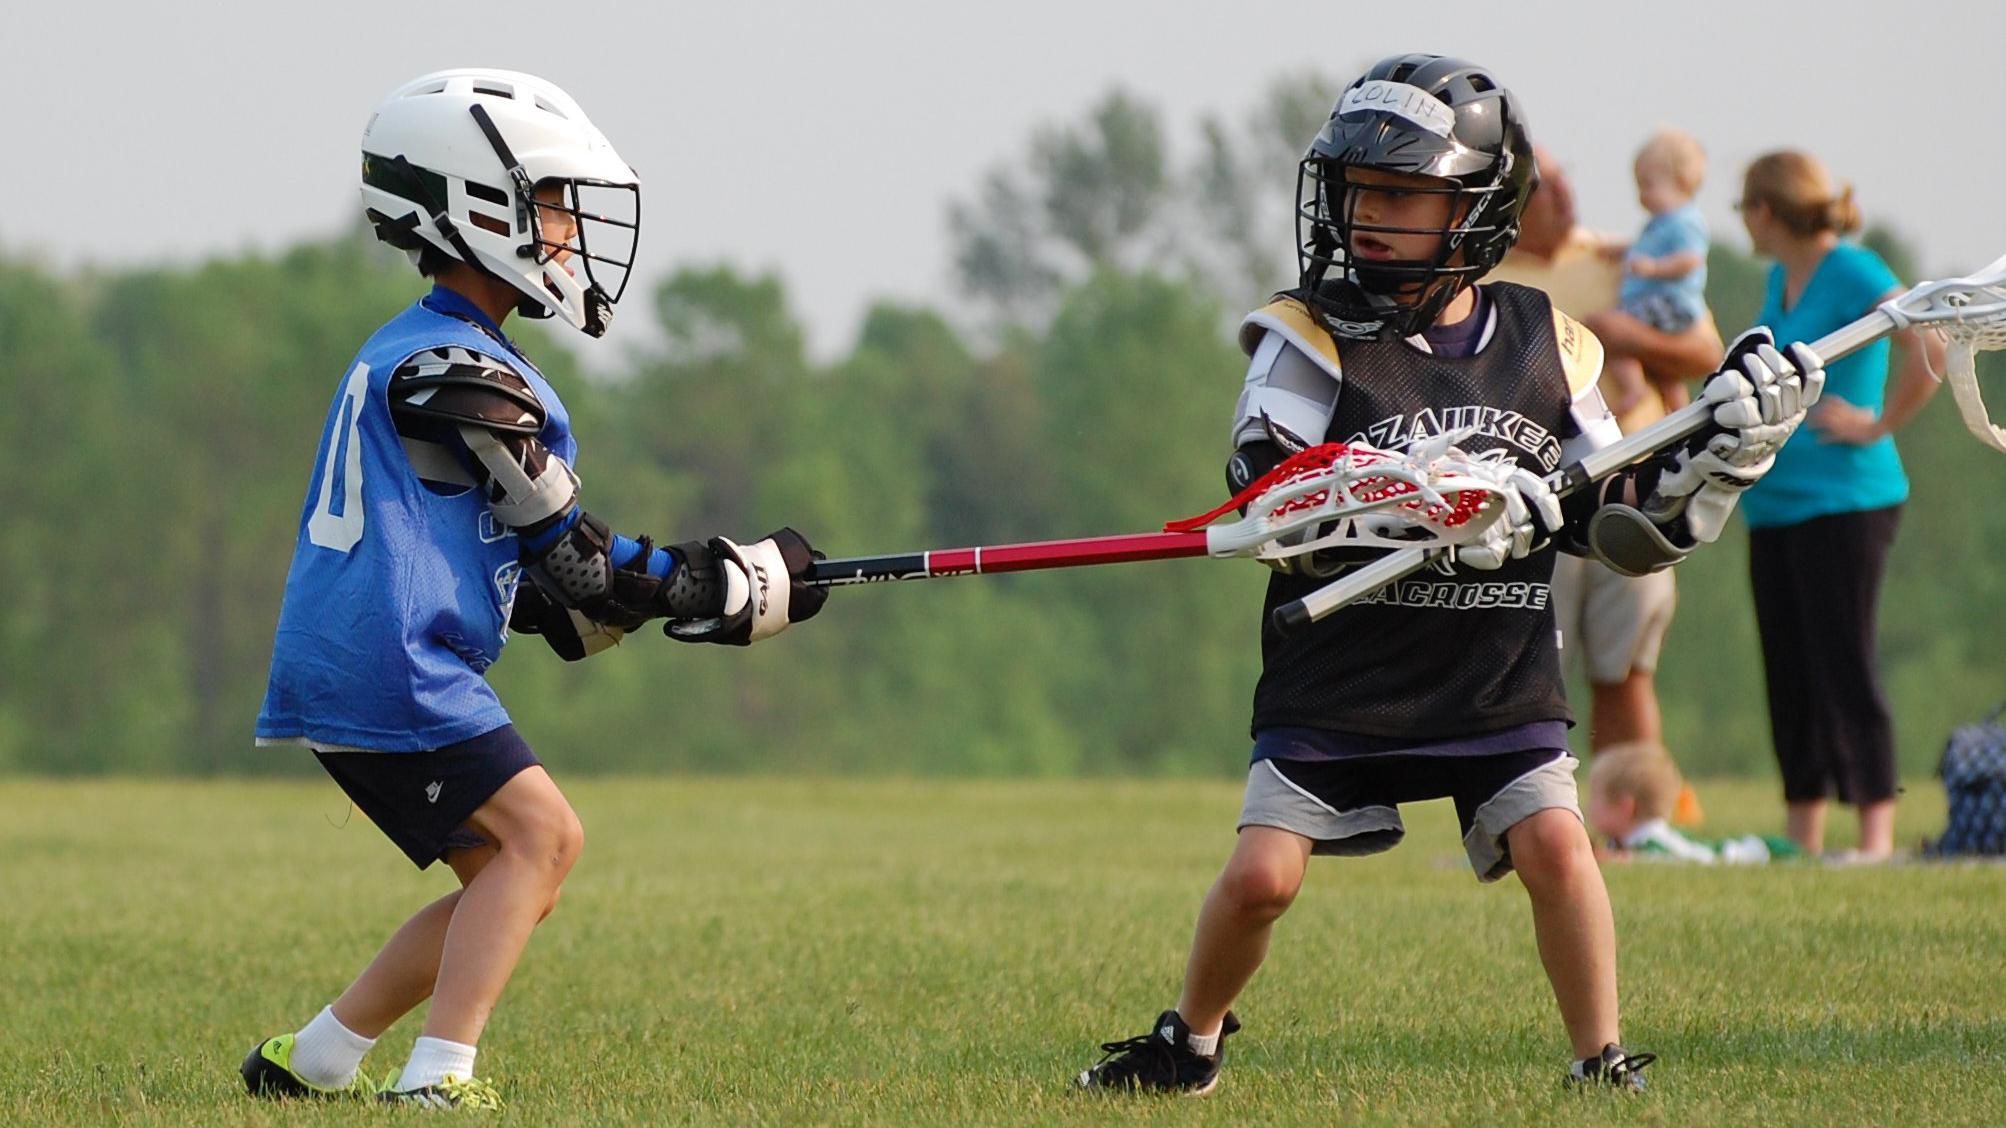 4 Things You Didn't Know About Lacrosse